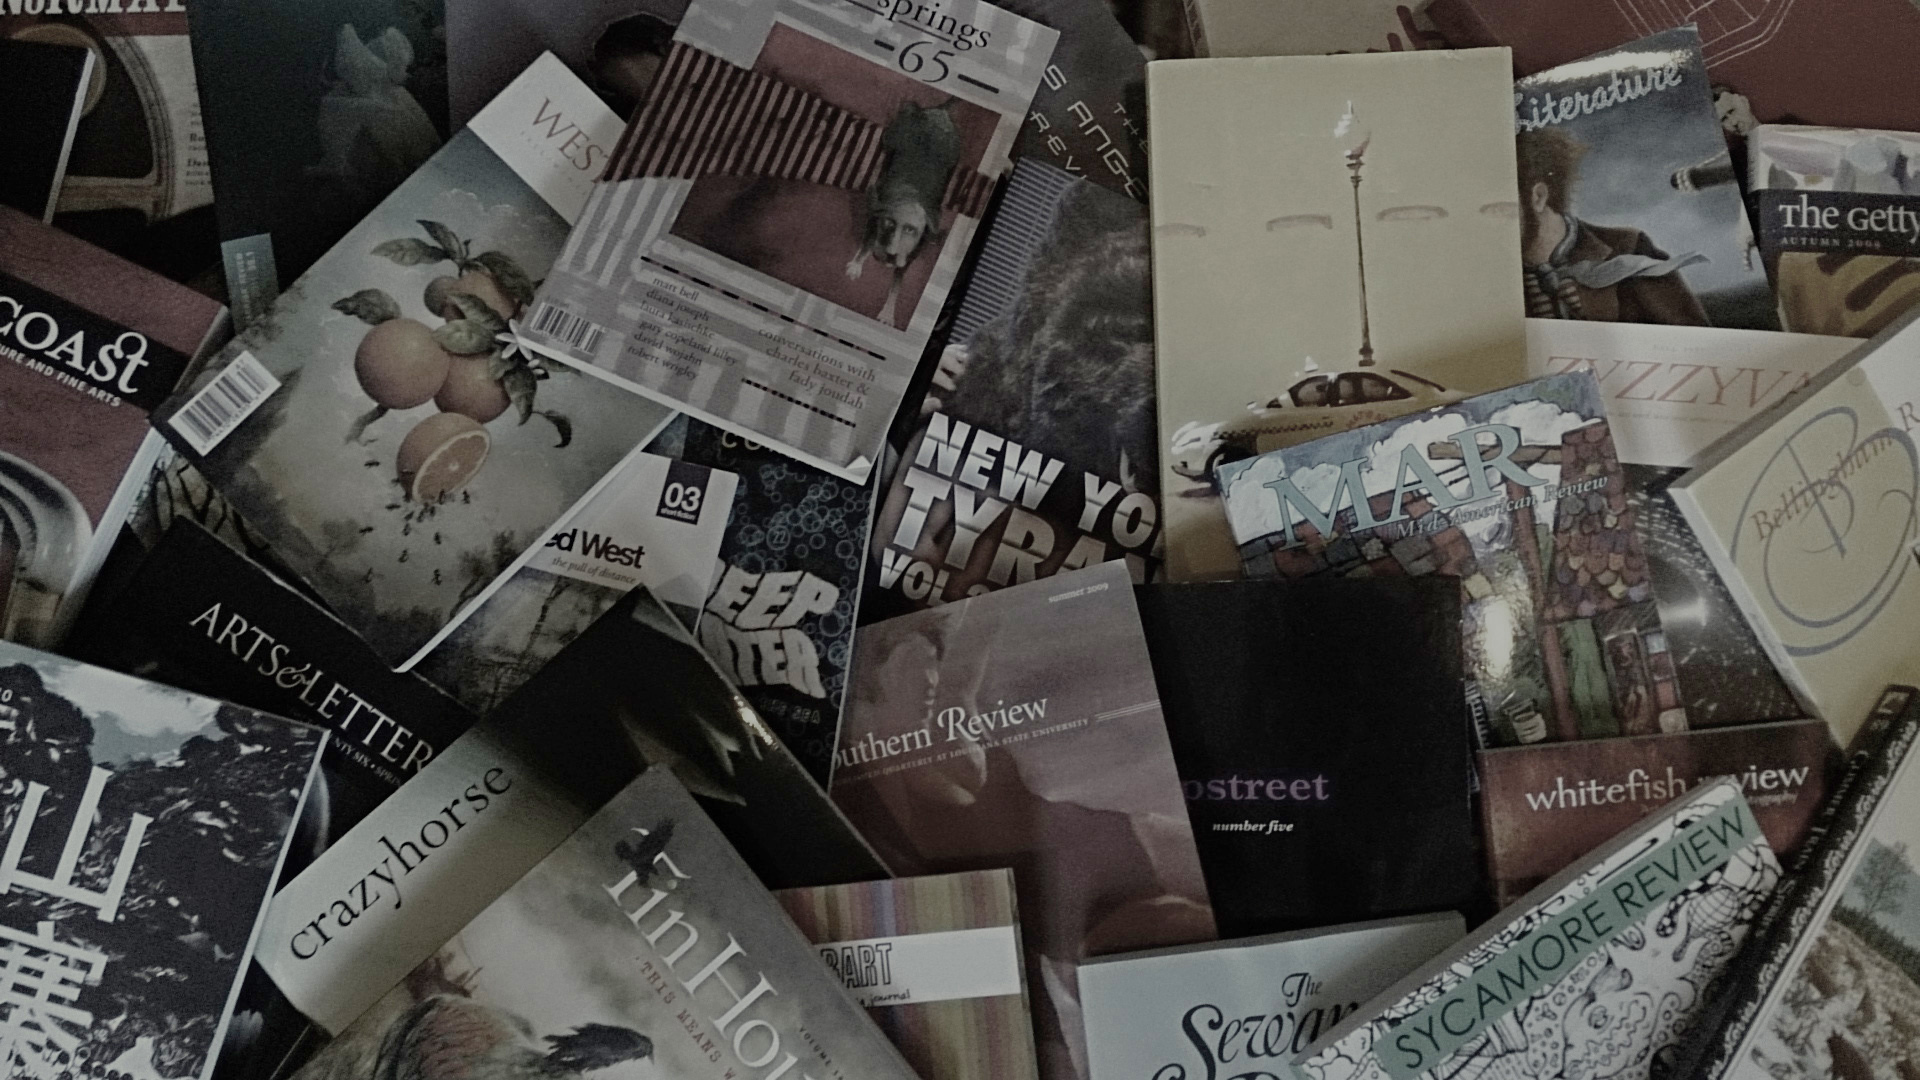 Picture of an array of literary journals spread on the floor.